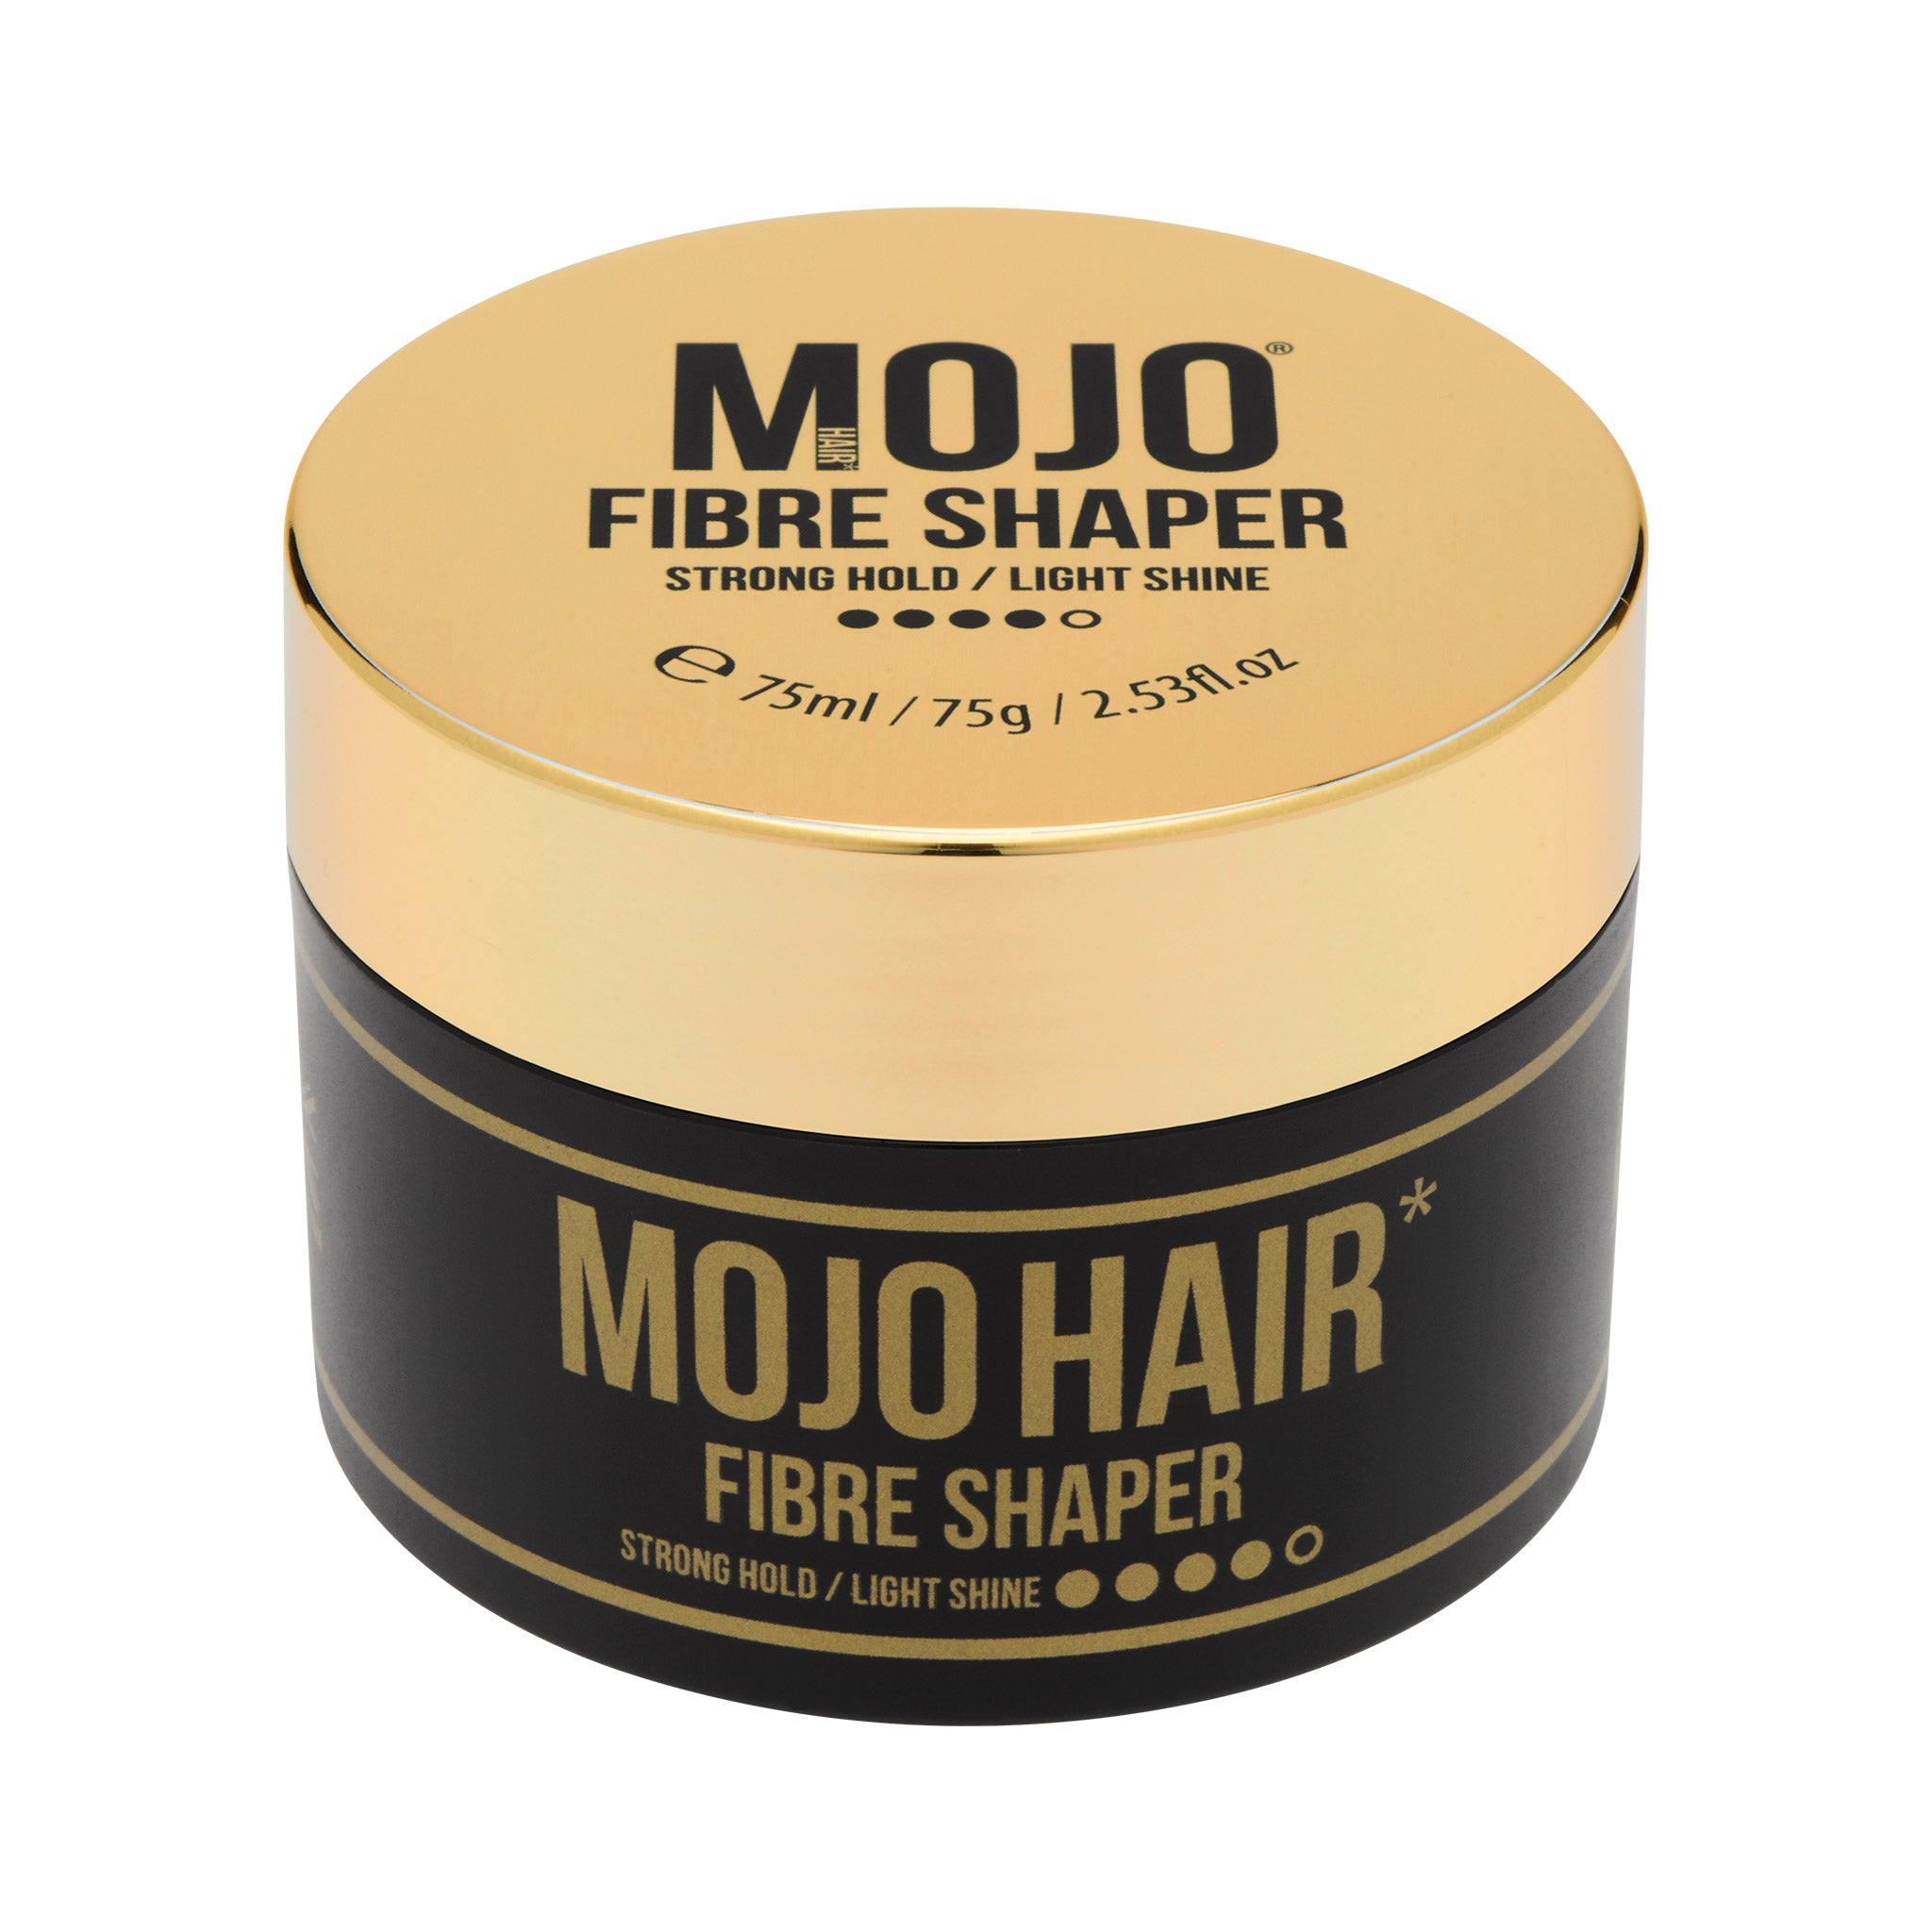 Mojo Hair Fibre Shaper (75ml)